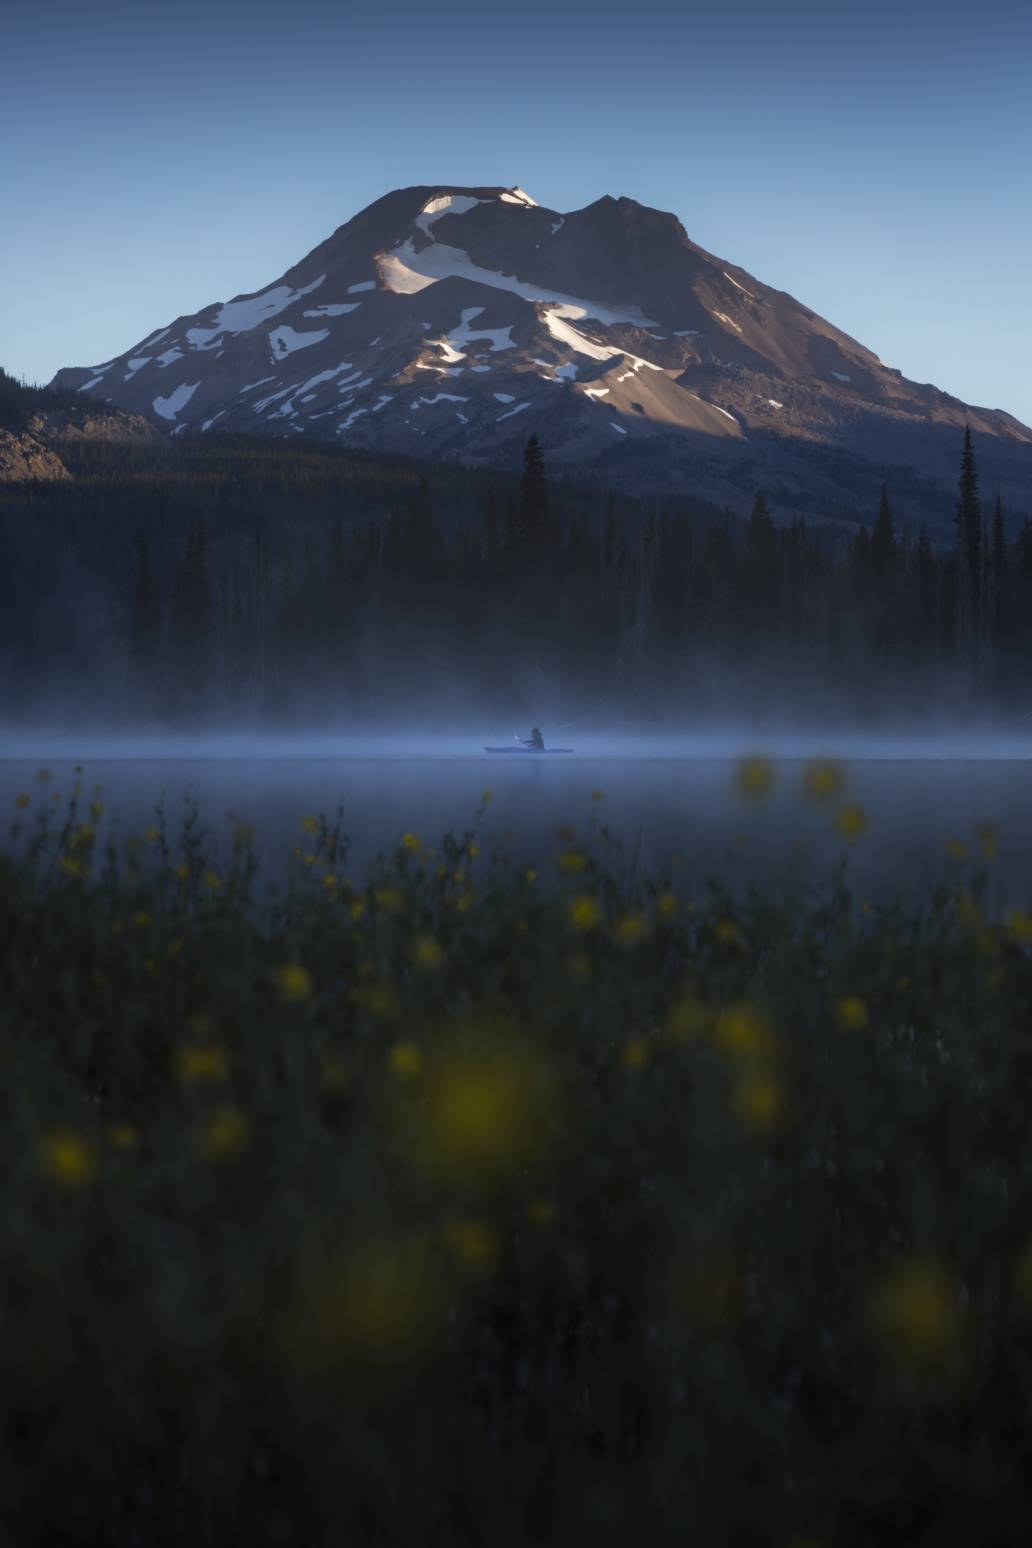 A person in a yellow kayak paddles during sunrise below a mountain near Bend Oregon at Sparks Lake